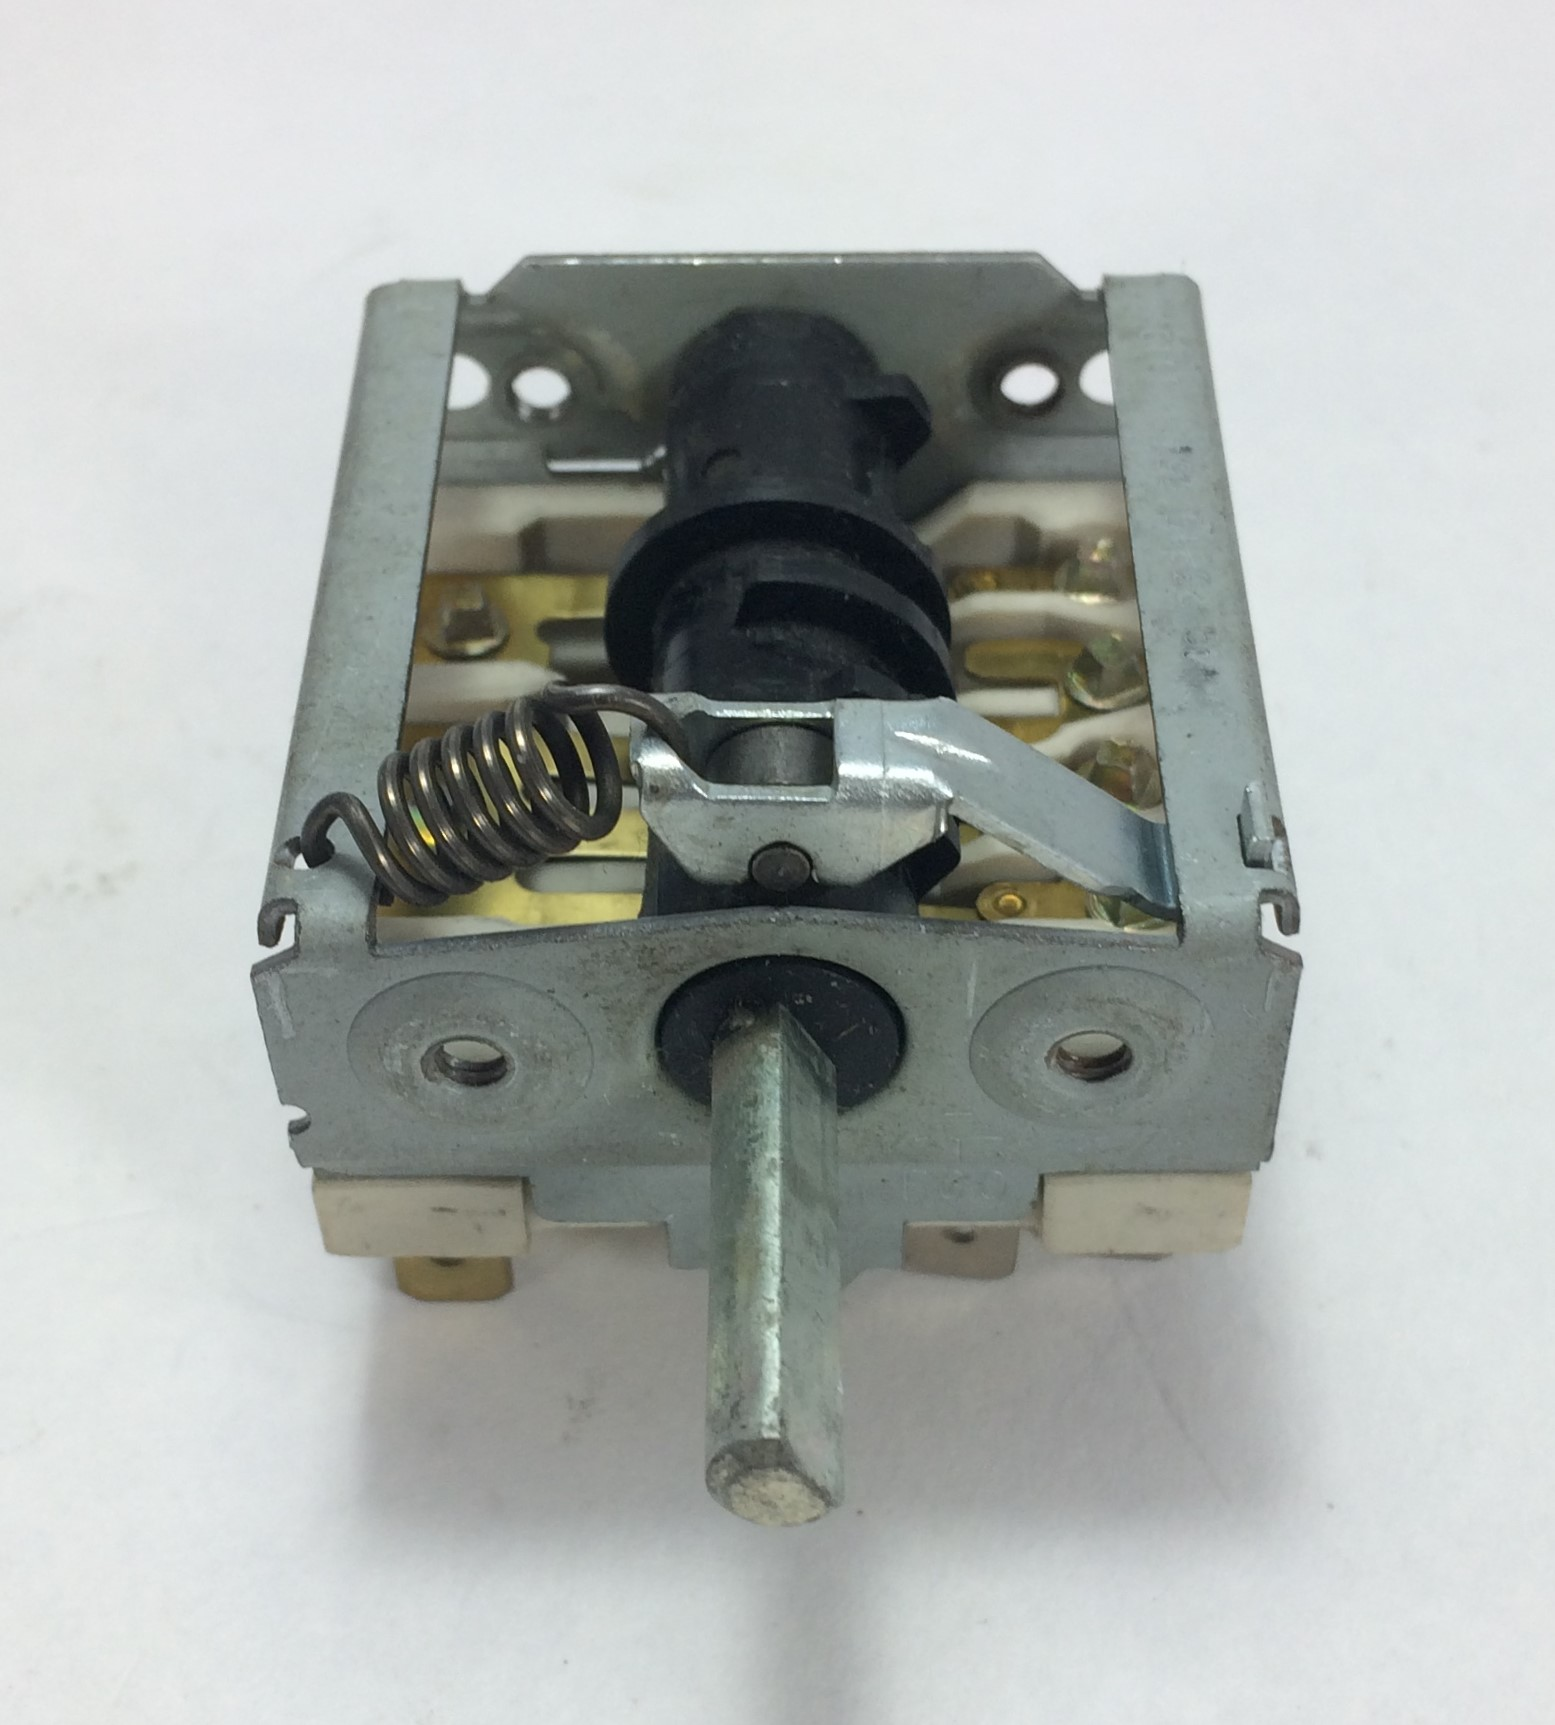 ROTARY SWITCH 6 POSITION 3 POLE EGO 52183703 T150... BERTOS ...